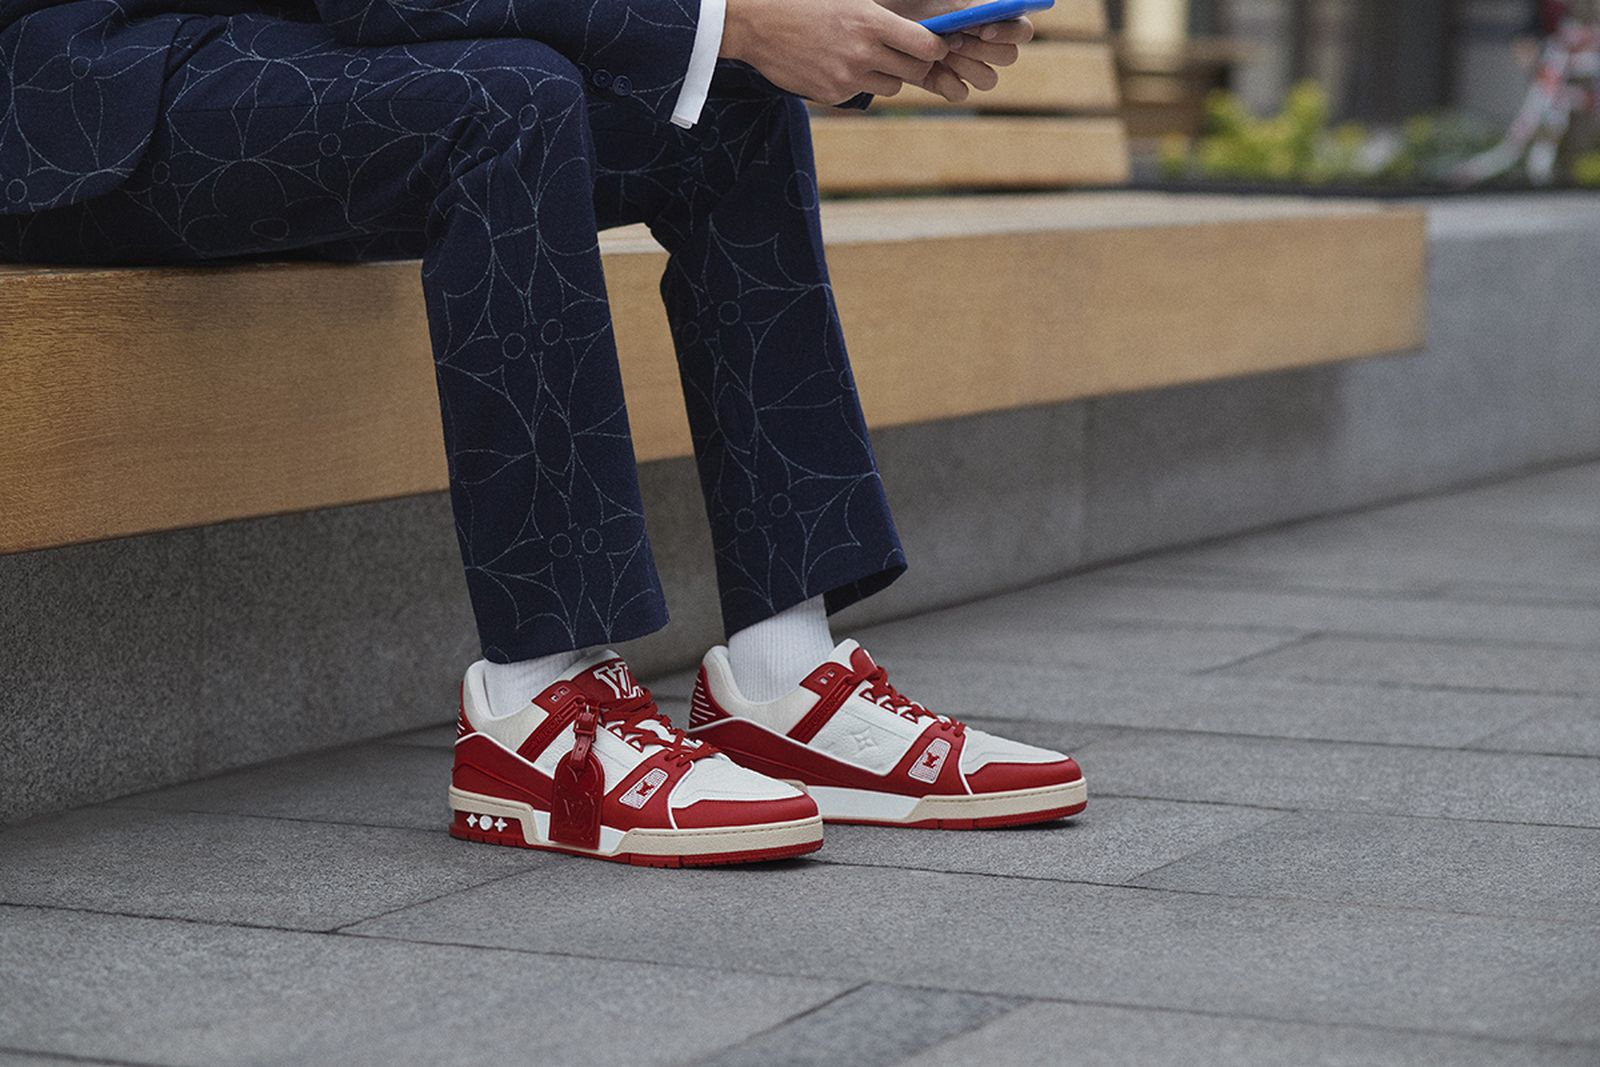 louis-vuitton-red-lv-trainer-release-date-price-02